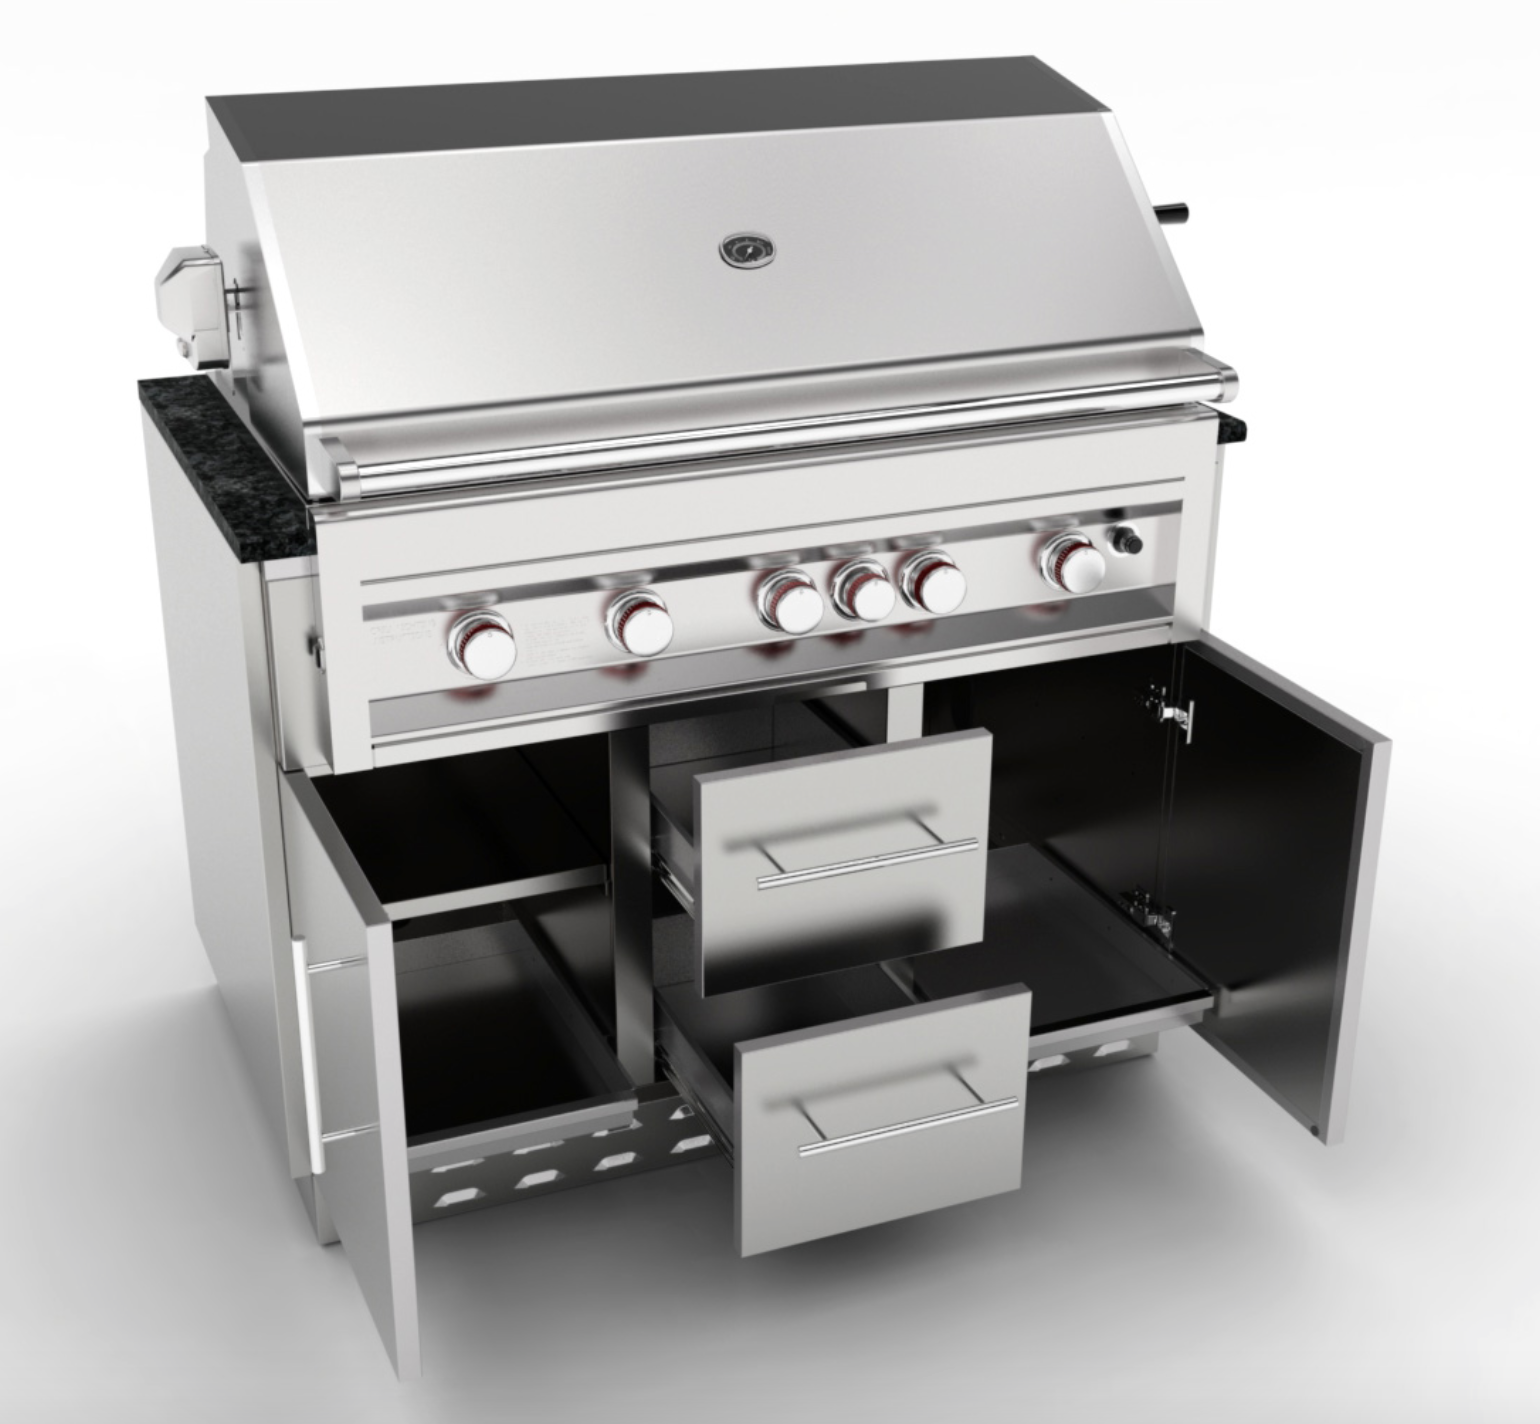 Grill Cabinet: Sunstone 46 Inch Gas Grill Base Cabinet SAC46GLPCD